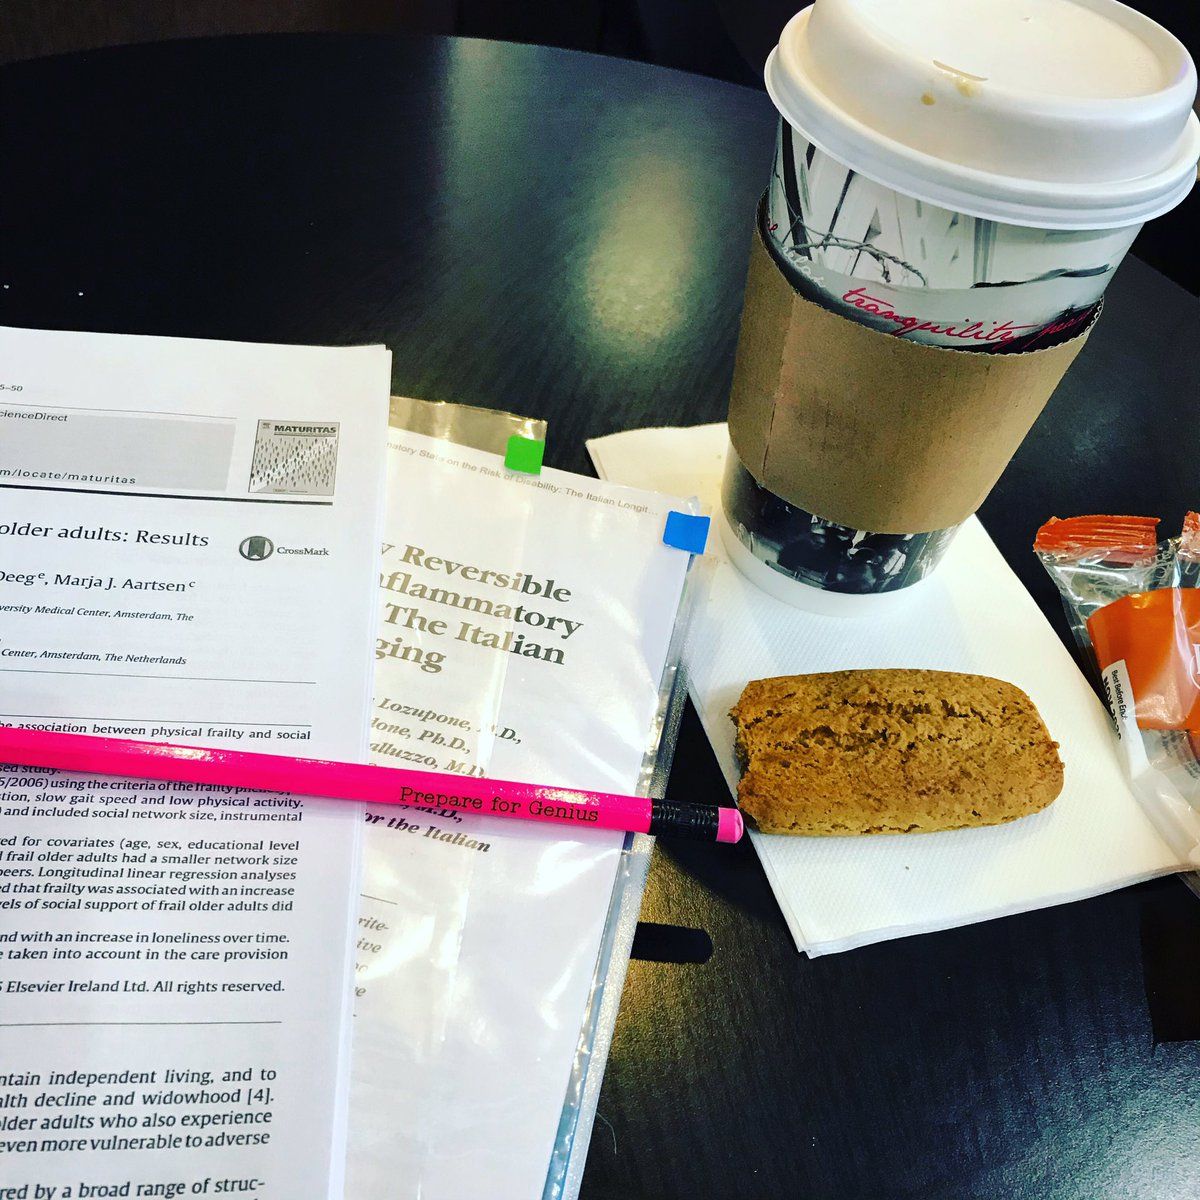 #PhDjourney when your office goes where you do and you need to prepare for genius when it strikes  <br>http://pic.twitter.com/x20wCdPiDO